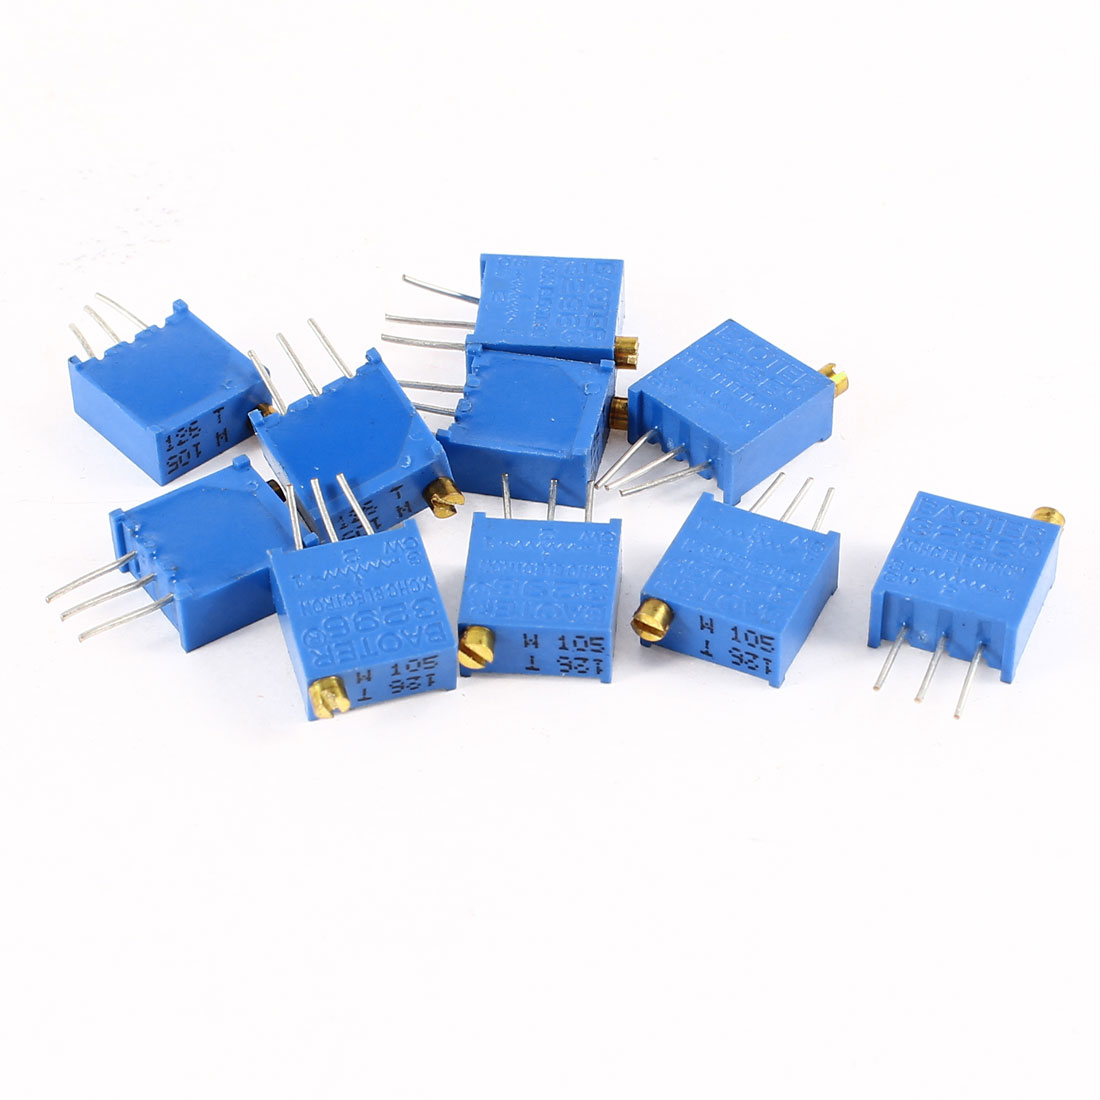 10Pcs 3296W-105 1M ohm 3 Pins High Precision Adjustable Resistor Trim Pot Potentiometer Trimmer